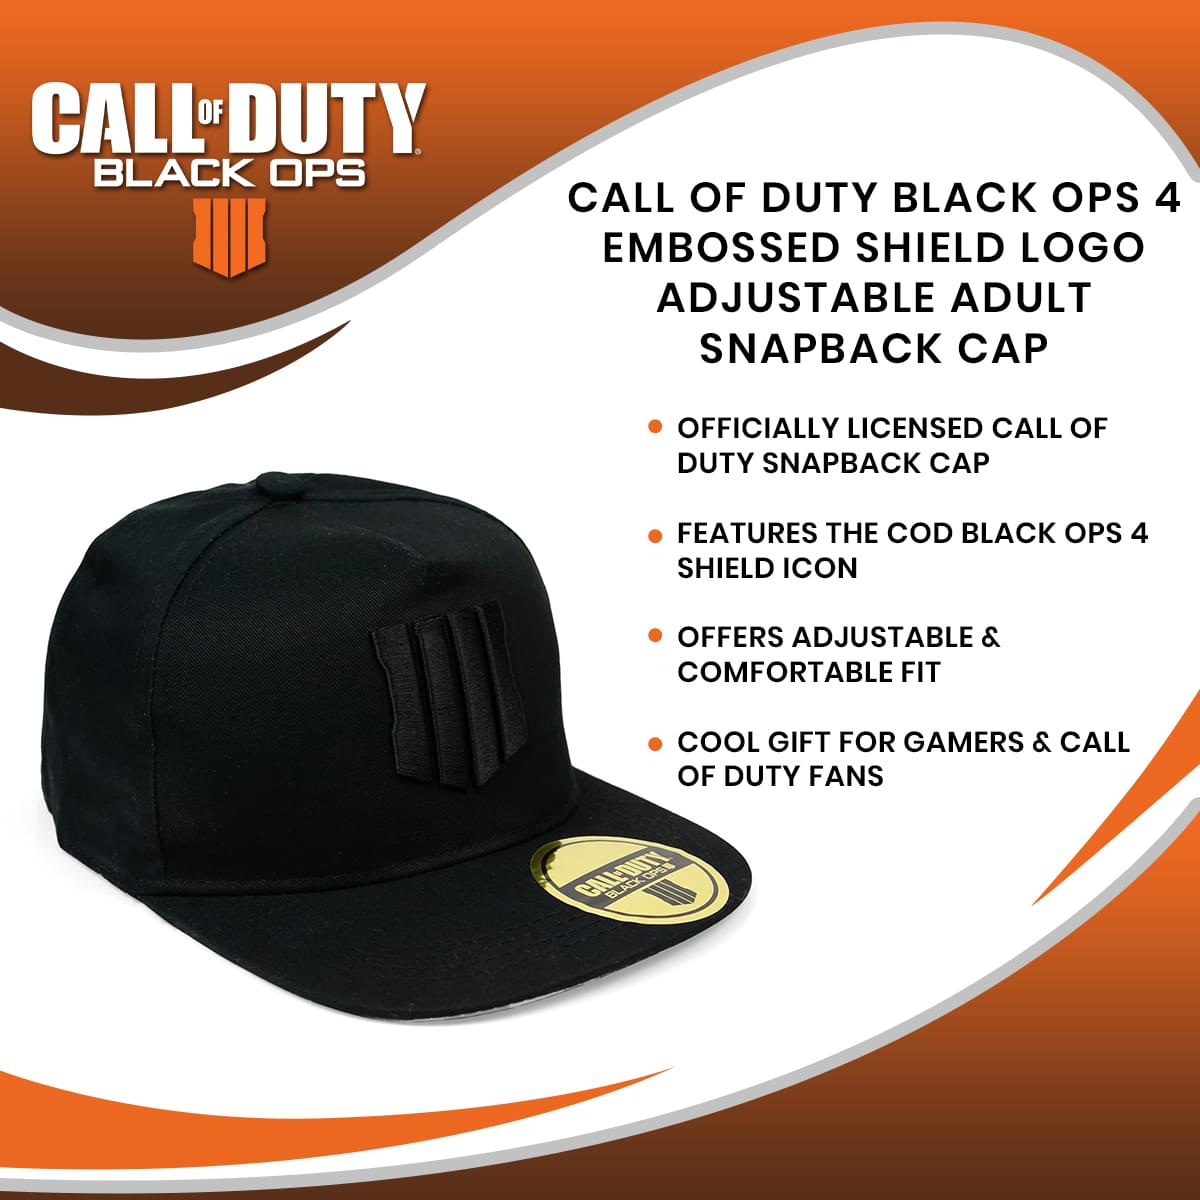 Call of Duty Black Ops 4 Embossed Shield Logo Adjustable Adult Snapback Cap